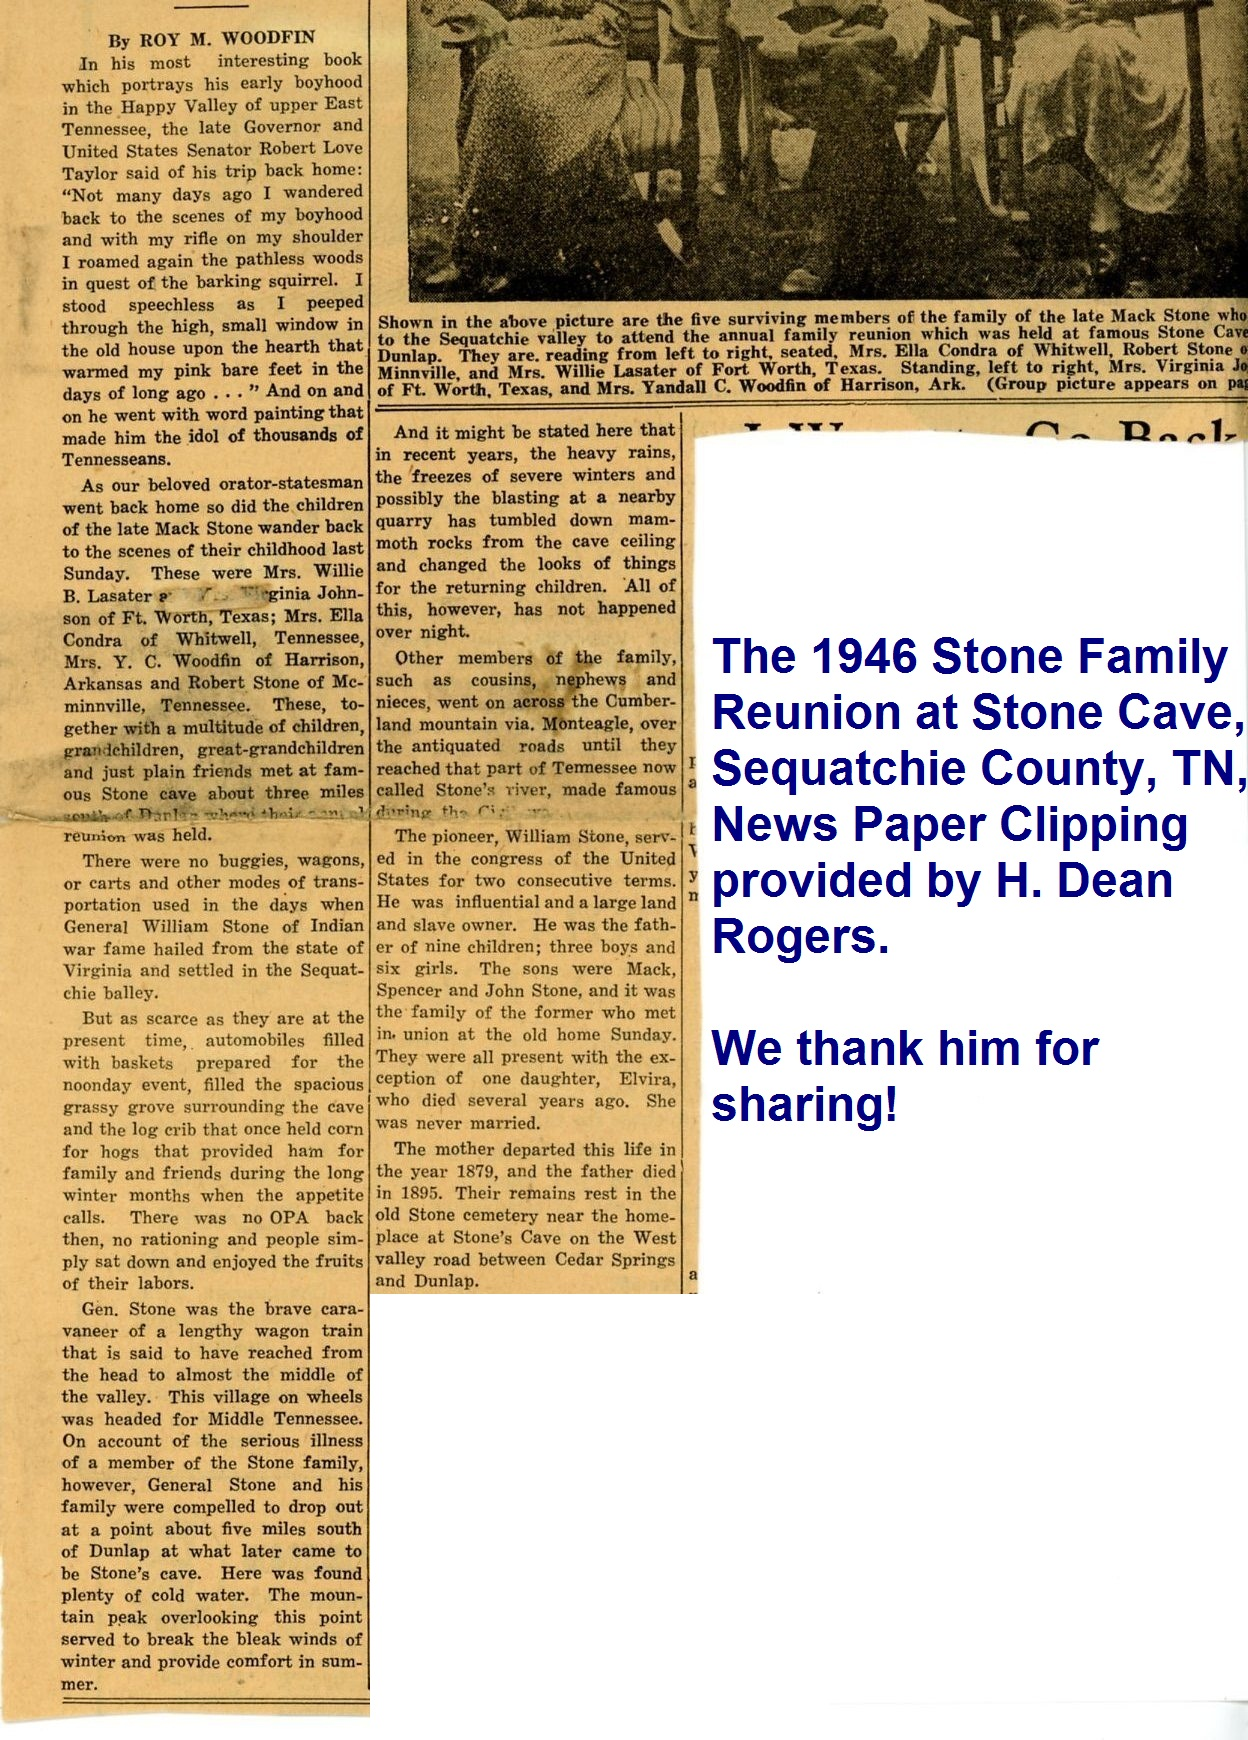 Tennessee marion county sequatchie - The 1946 Stone Family Reunion At Stone Cave Sequatchie County Tn